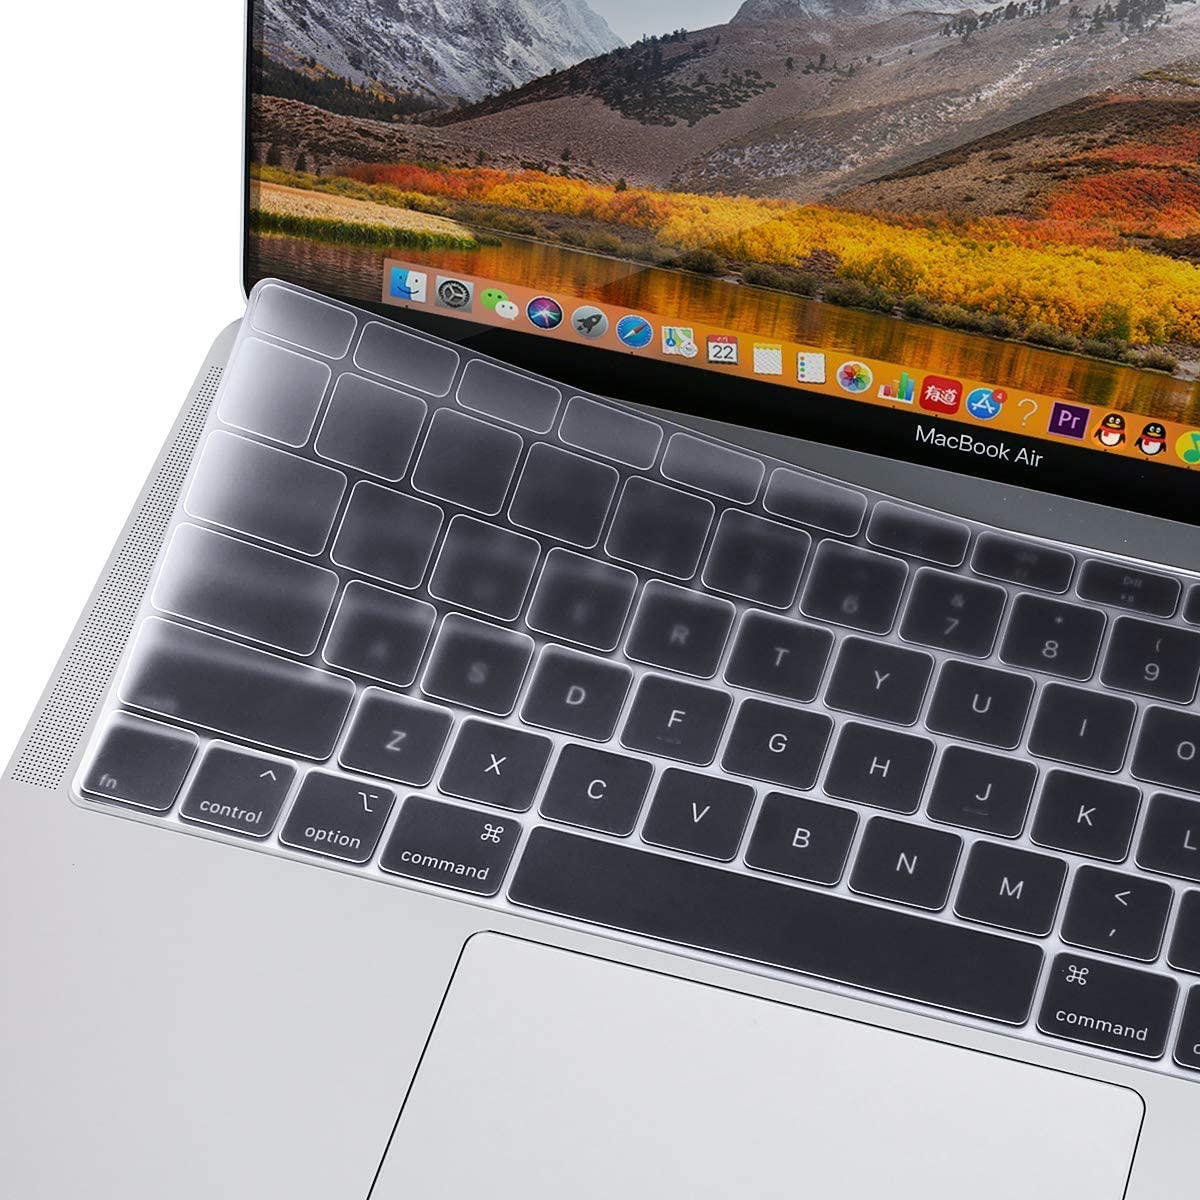 MOSISO Keyboard Cover Only Compatible with MacBook Air 13 inch 2020 Release A2179 Backlit Magic Keyboard with Retina Display & Touch ID, Waterproof Dust-Proof Protective Silicone Skin, Transparent